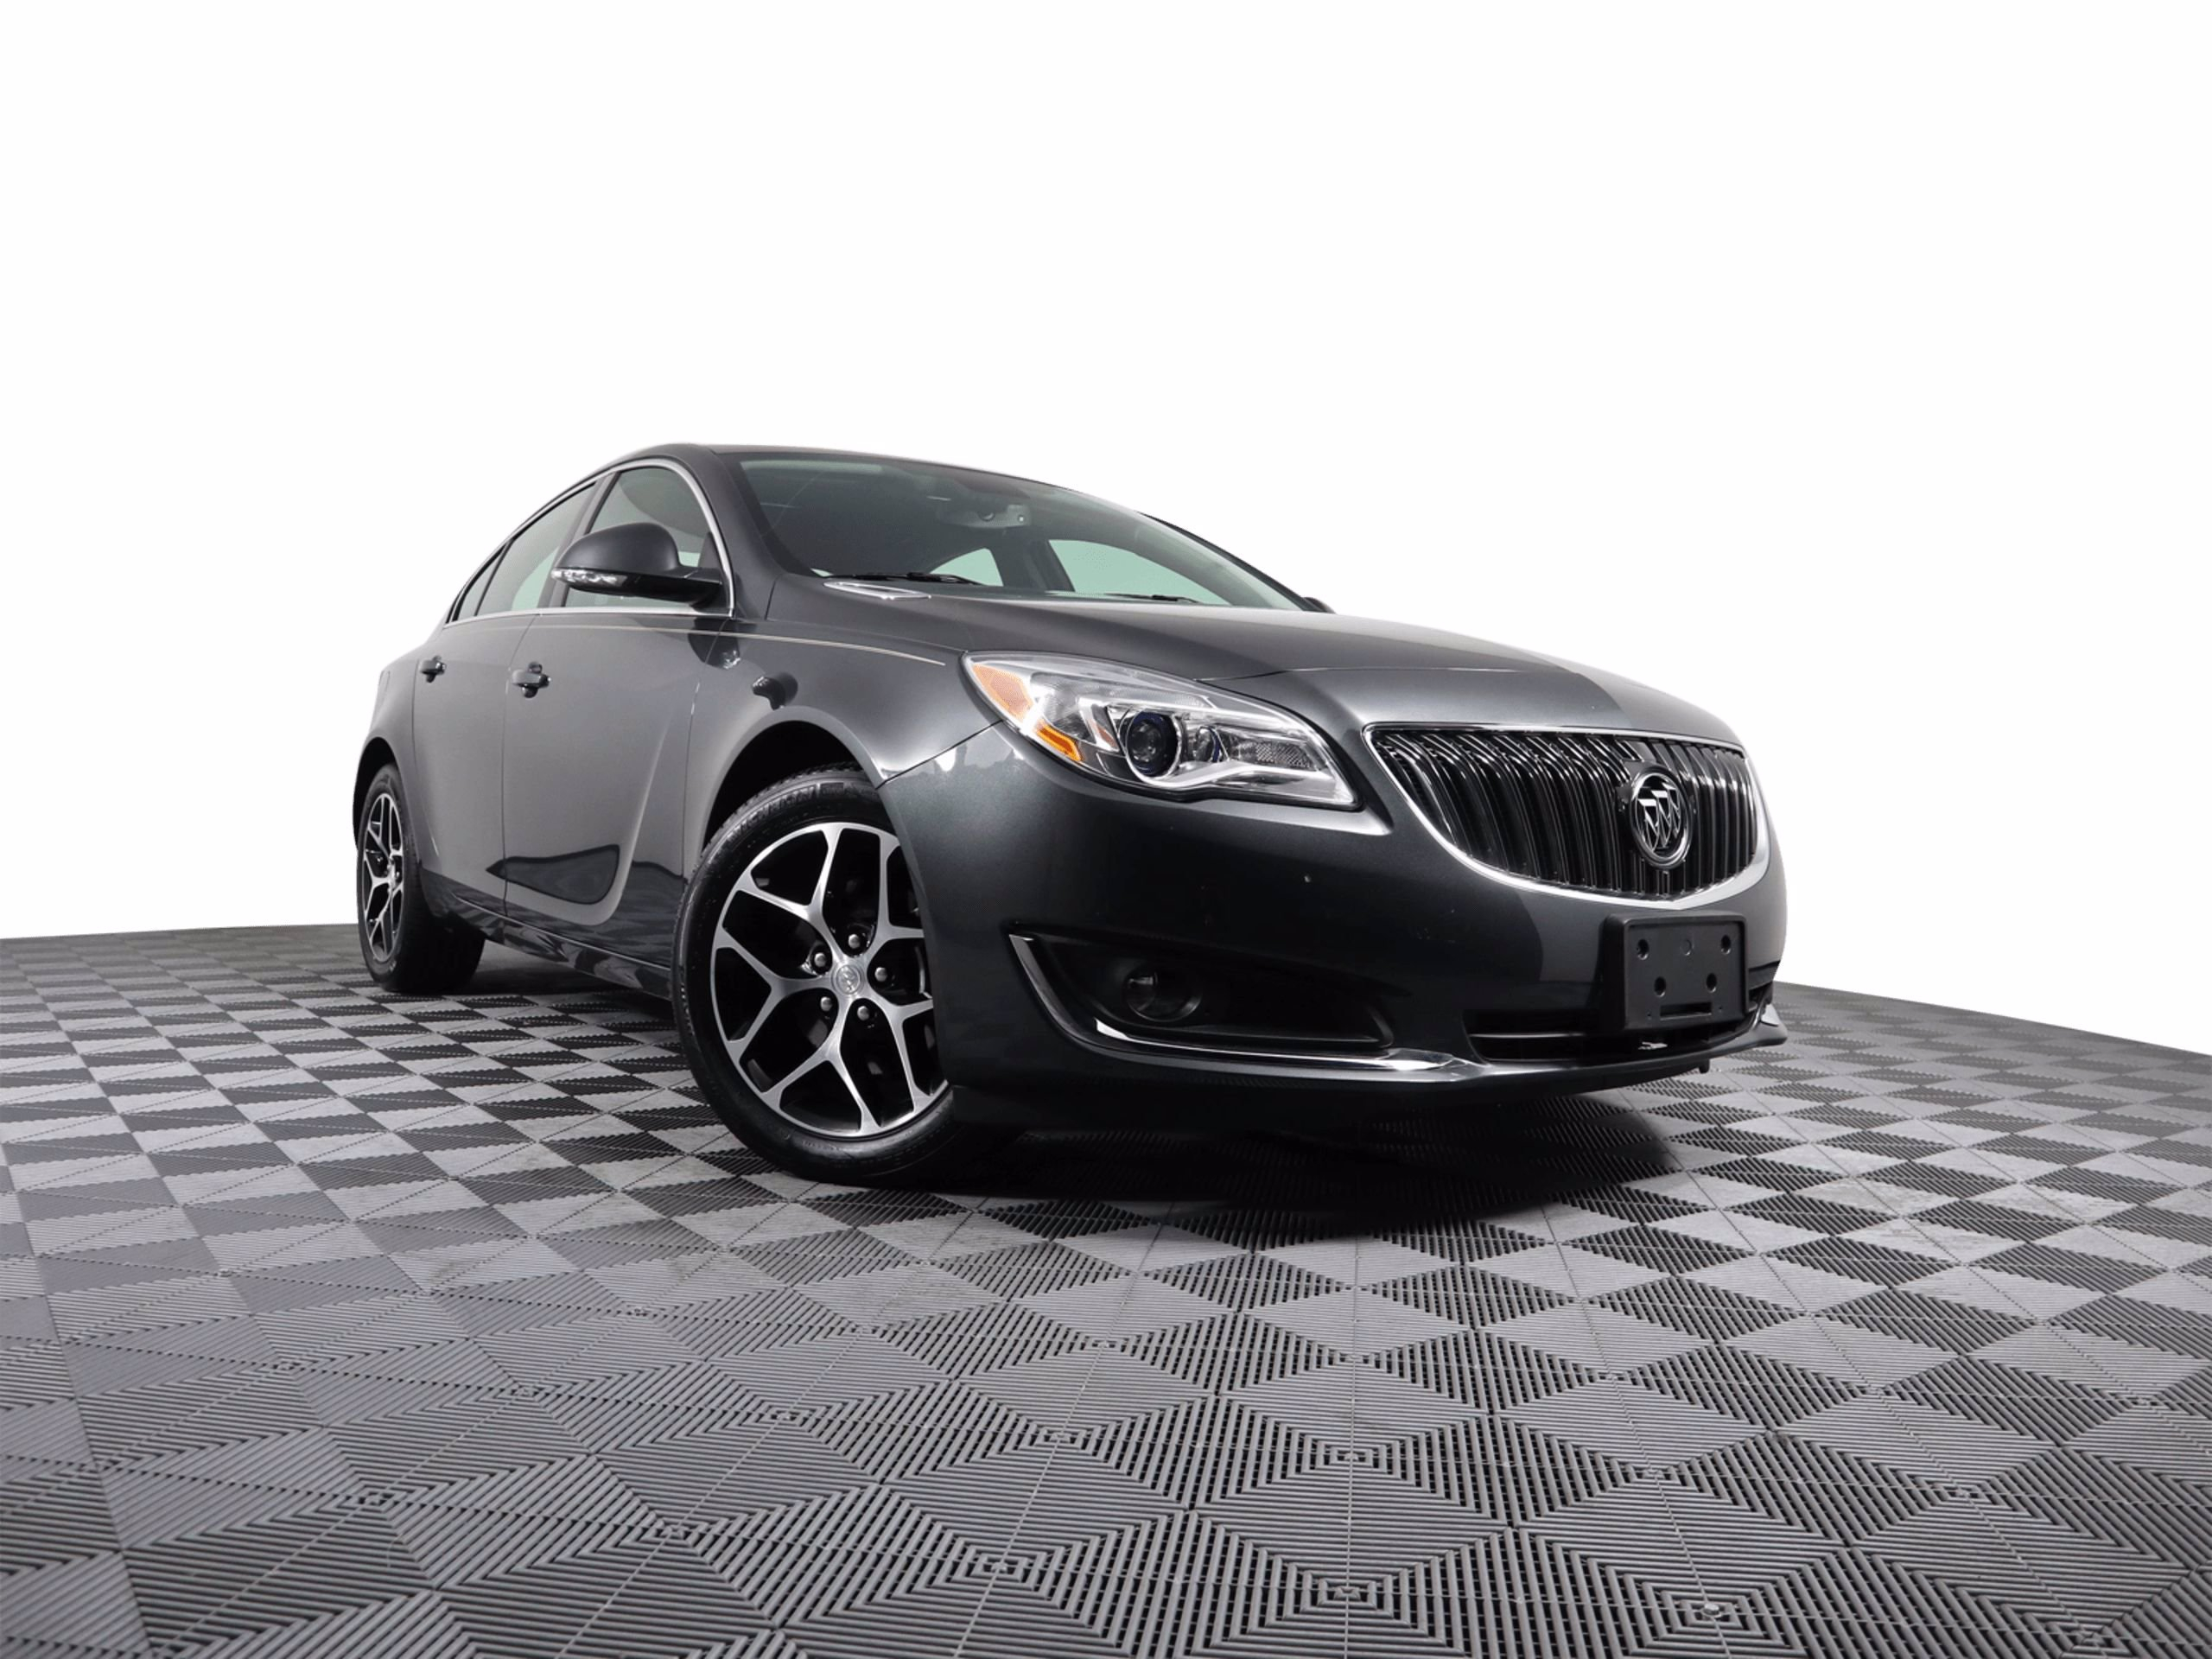 2017 Buick Regal Sport Touring Fwd 4Dr Car 2022 Buick Regal Mpg, Engine, Owners Manual